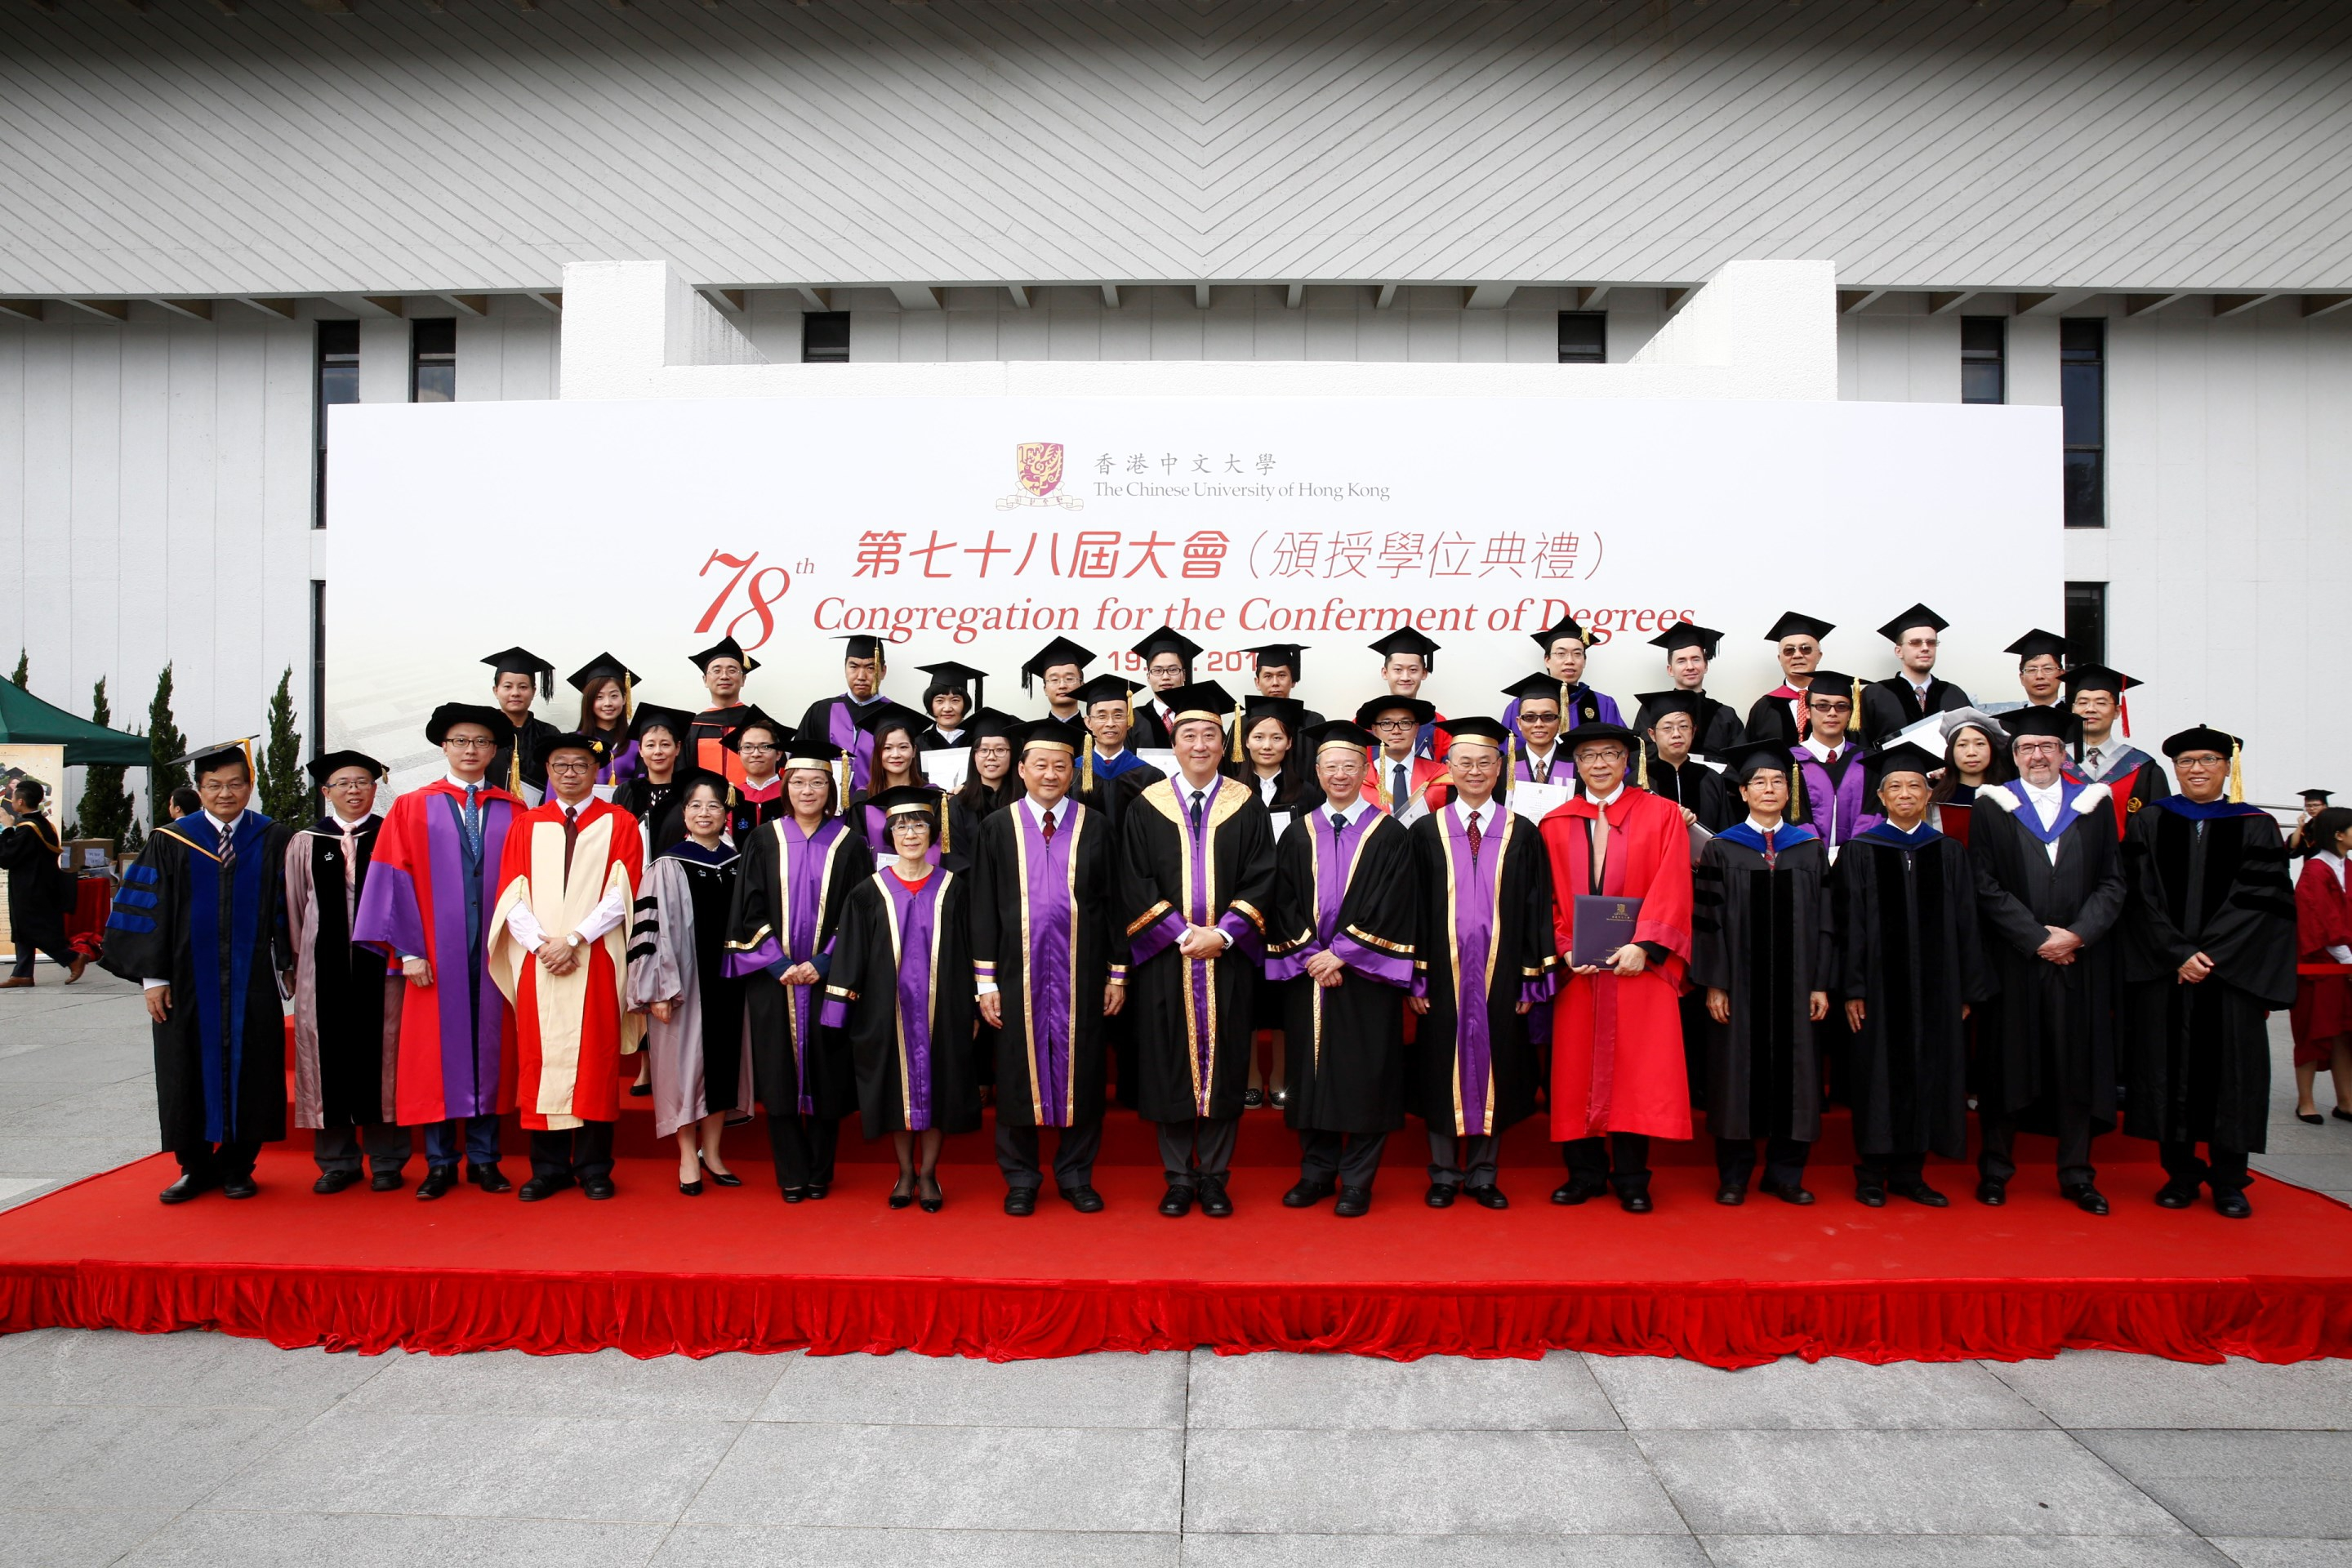 (From 6th right, front row) Prof. Fok Tai-fai and Prof. Michael Hui, Pro-Vice-Chancellors; Prof. Joseph Sung, Vice-Chancellor; Prof. Benjamin Wah, Provost; Prof. Fanny Cheung and Prof. Poon Wai-yin, Pro-Vice-Chancellors; pose for a group photo with Choh-Ming Li Professors, the awardees of University Education Award 2015, Vice-Chancellor's Exemplary Teaching Award 2014, Young Researcher Award 2014 and Postgraduate Research Output Award 2014.